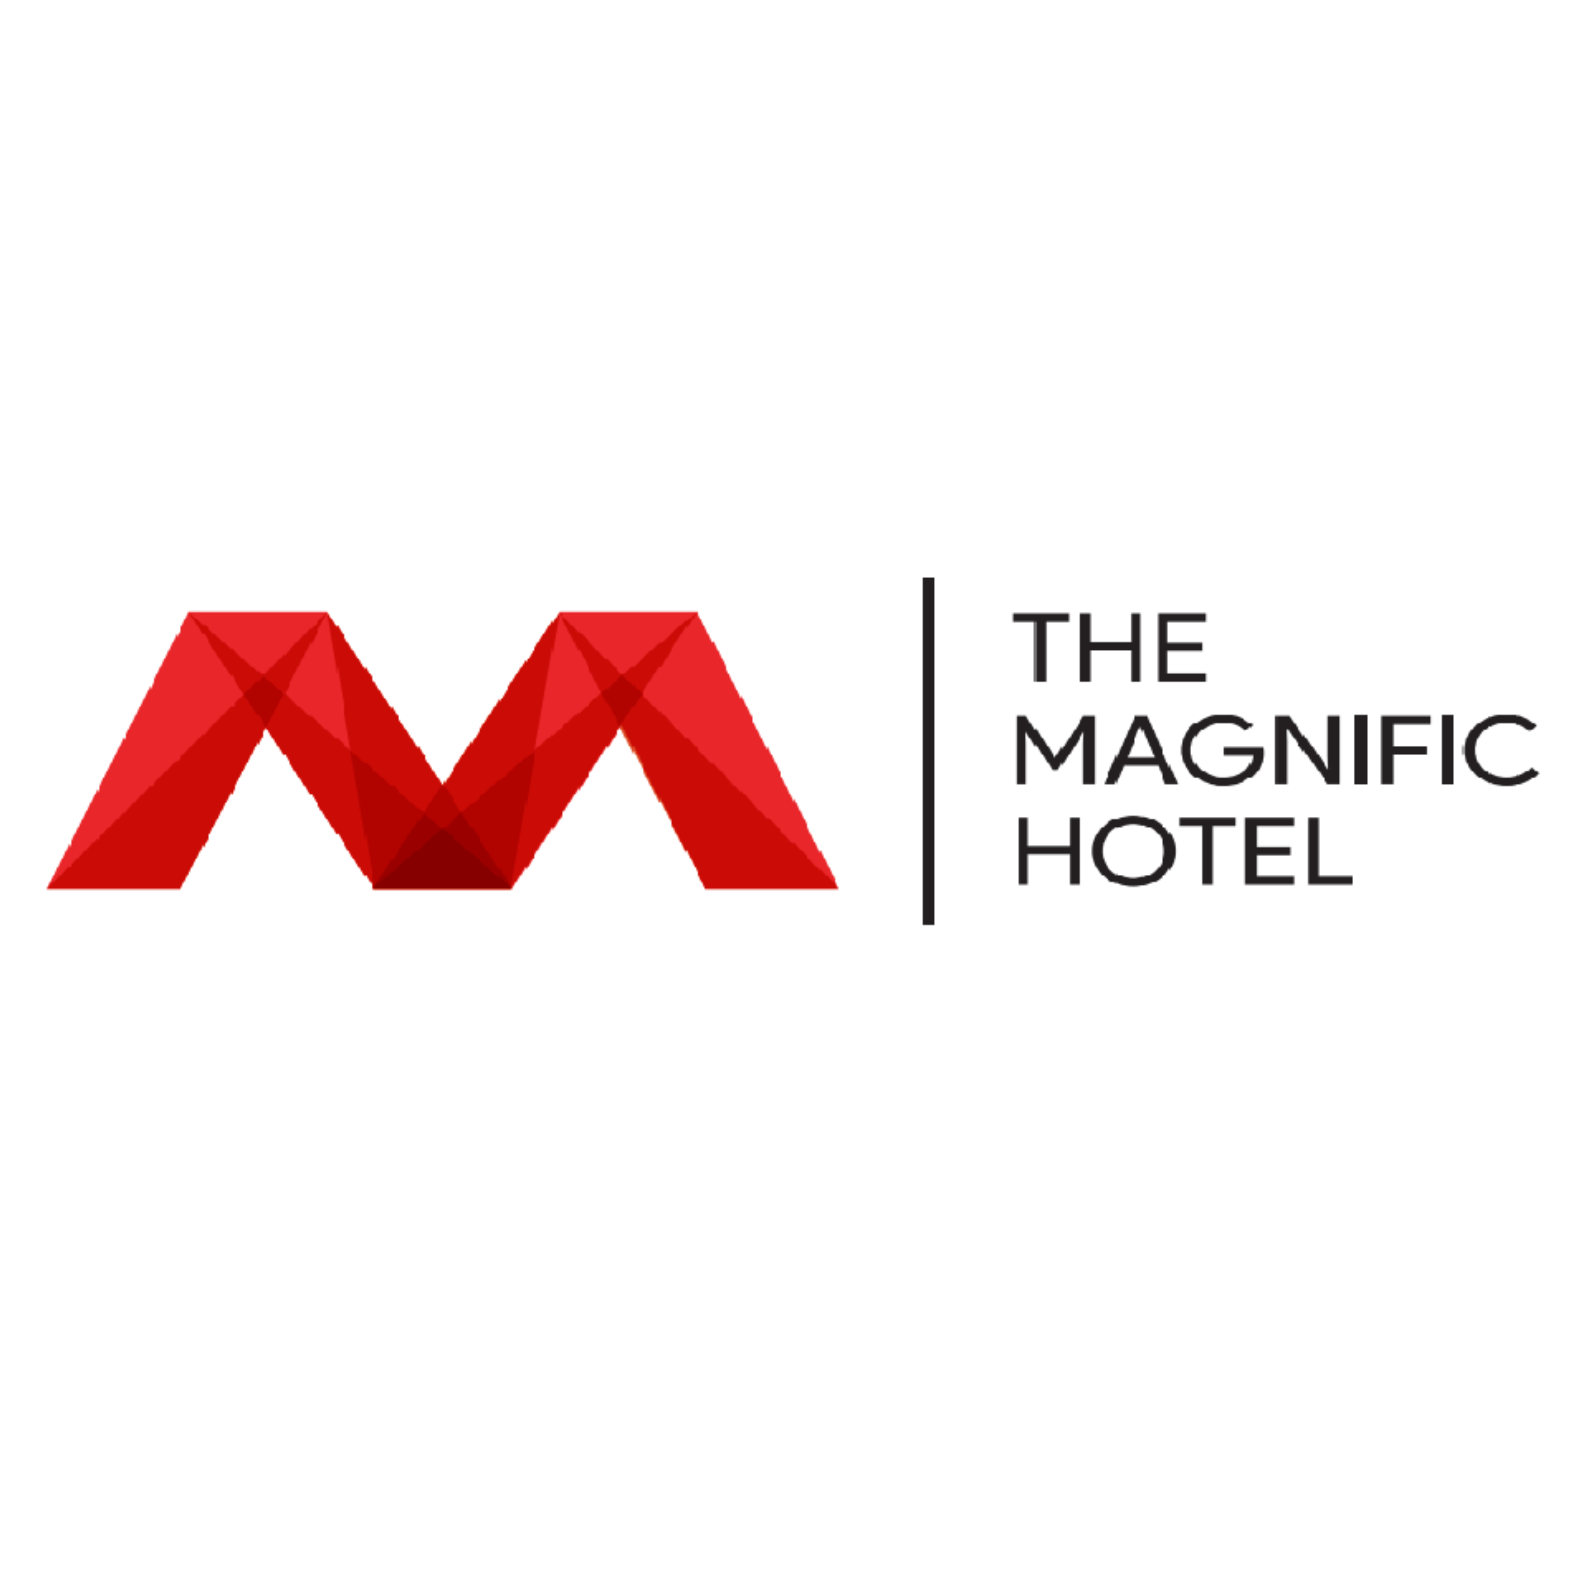 THE MAGNIFIC HOTEL